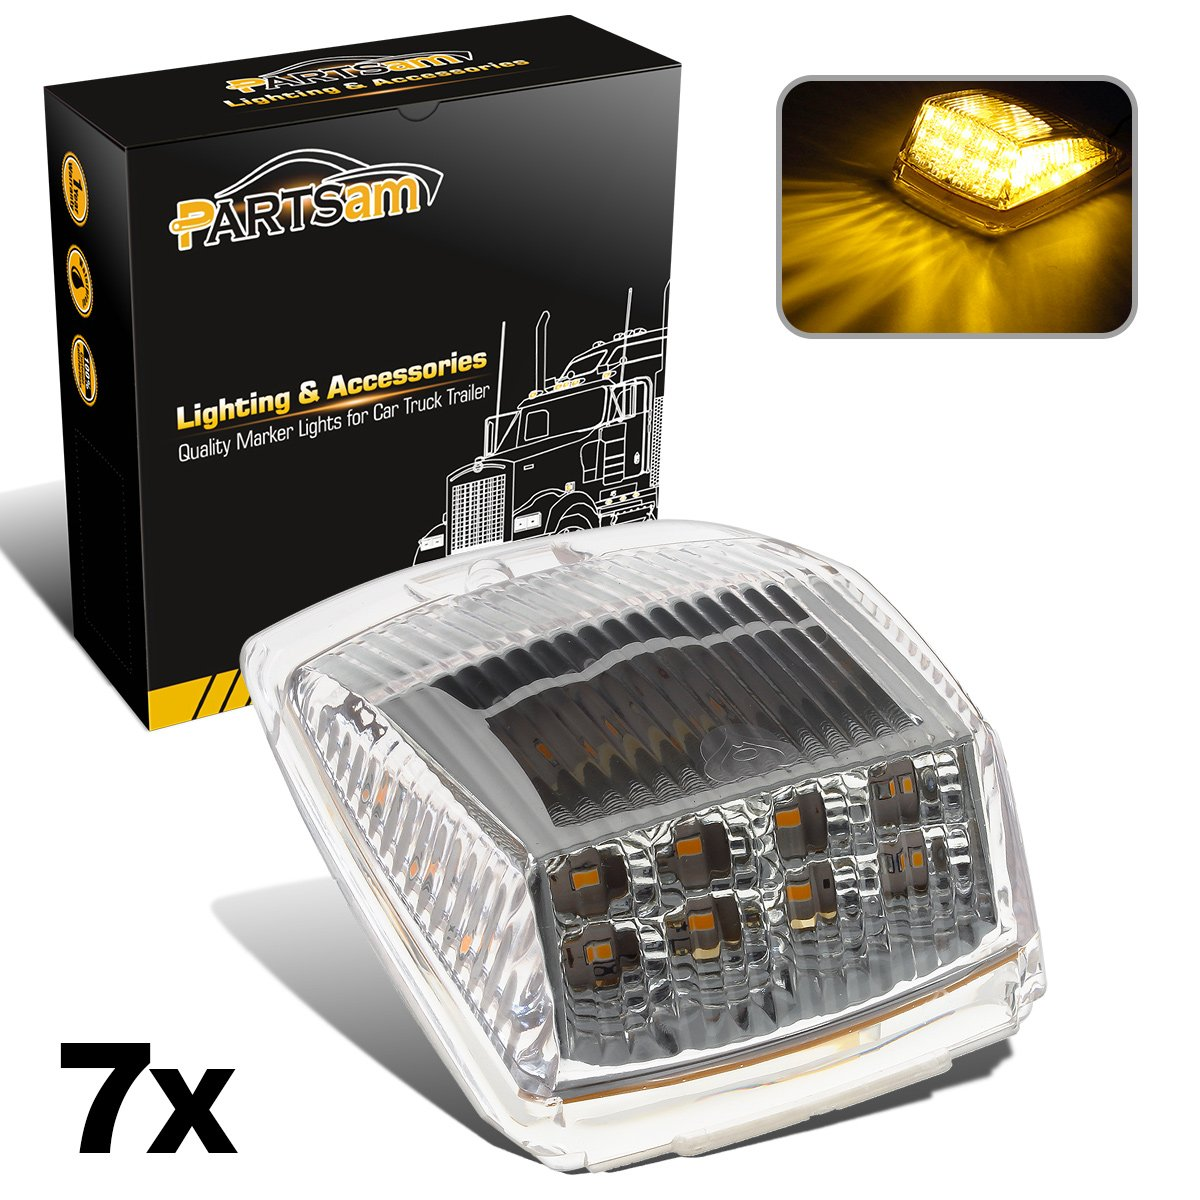 Partsam 7X Clear/Amber 17LED Cab Roof Running Top LED Cab Marker Reflector Lights Replacement Lens Compatible with Kenworth/Peterbilt/Freightliner/Mack Truck Trailer by Partsam